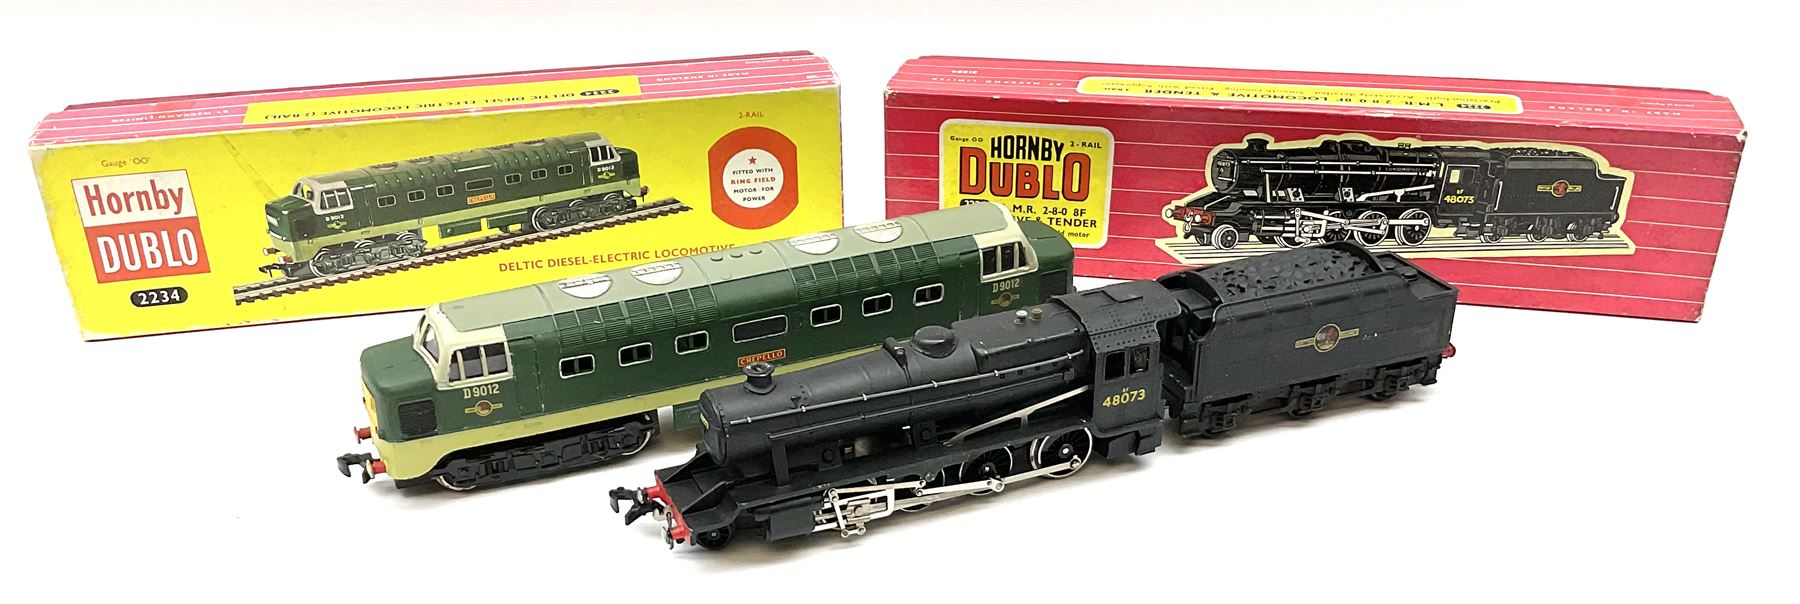 Hornby Dublo - two-rail 2224 Class 8F 2-8-0 locomotive No.48073 with instructions; and 2234 Deltic T